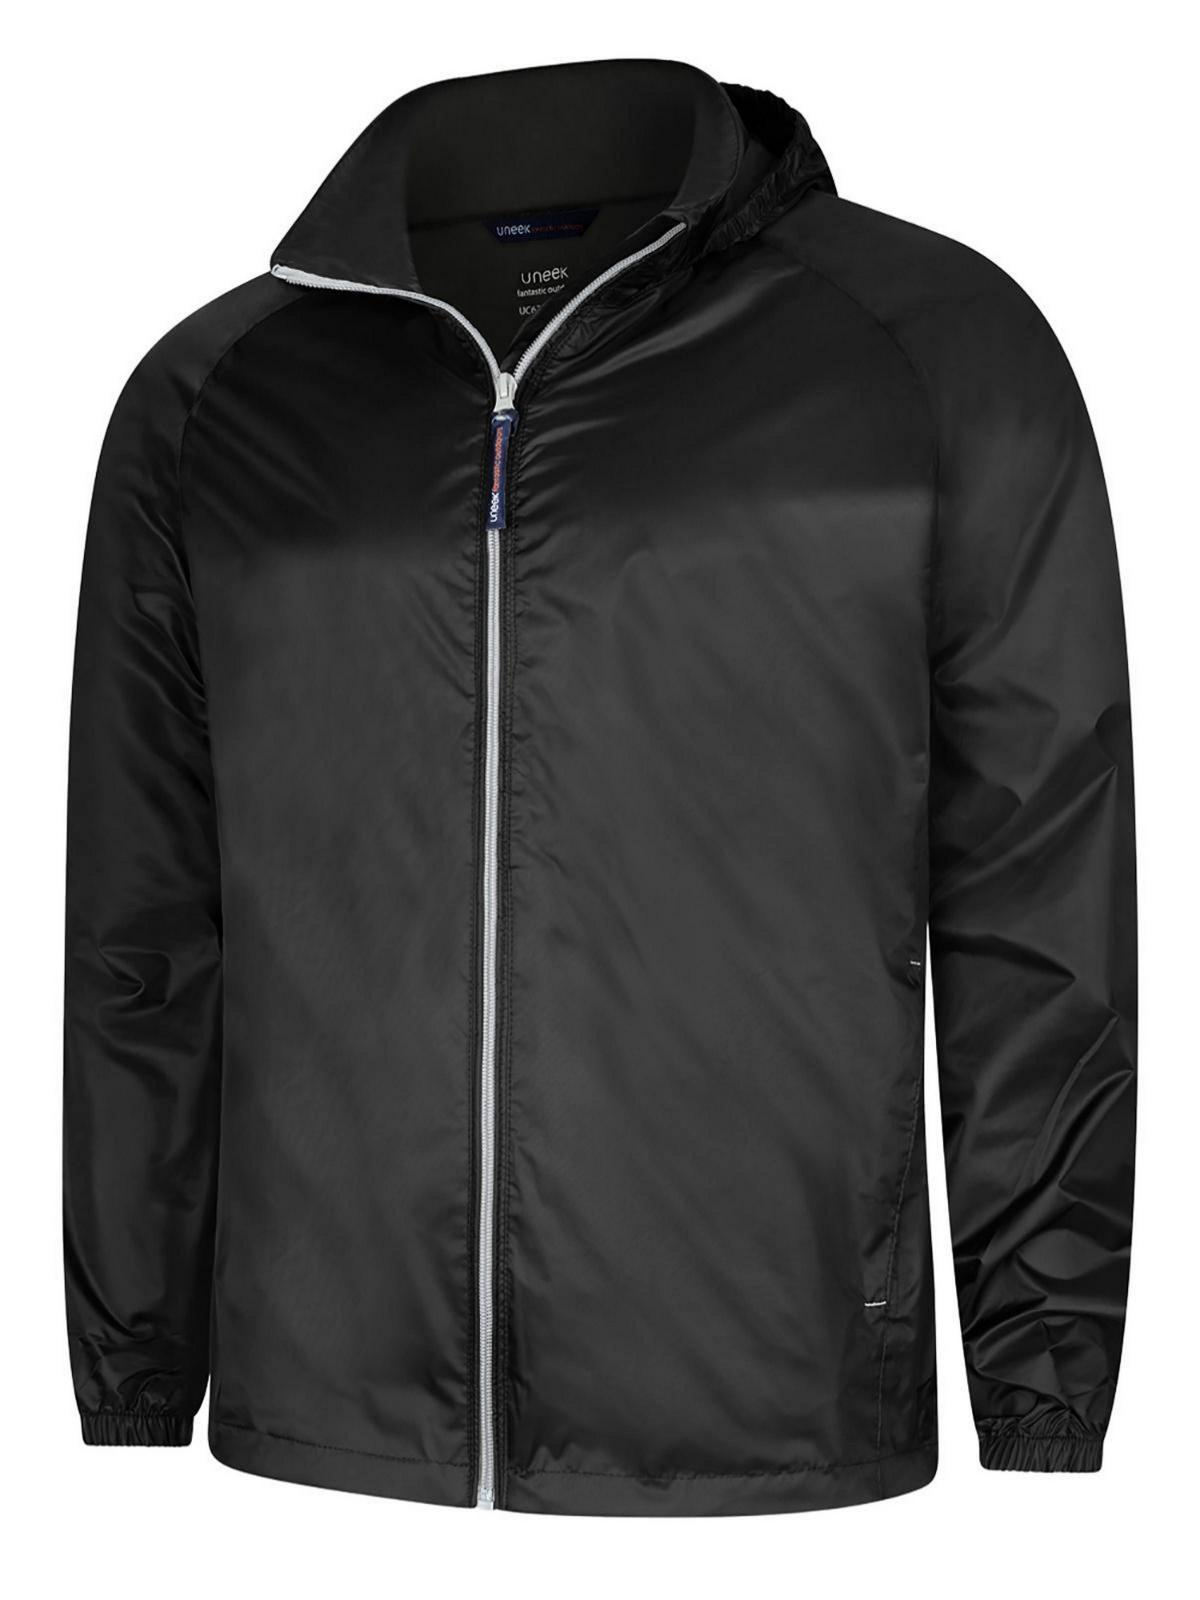 UNEEK UC630 ACTIVE JACKET